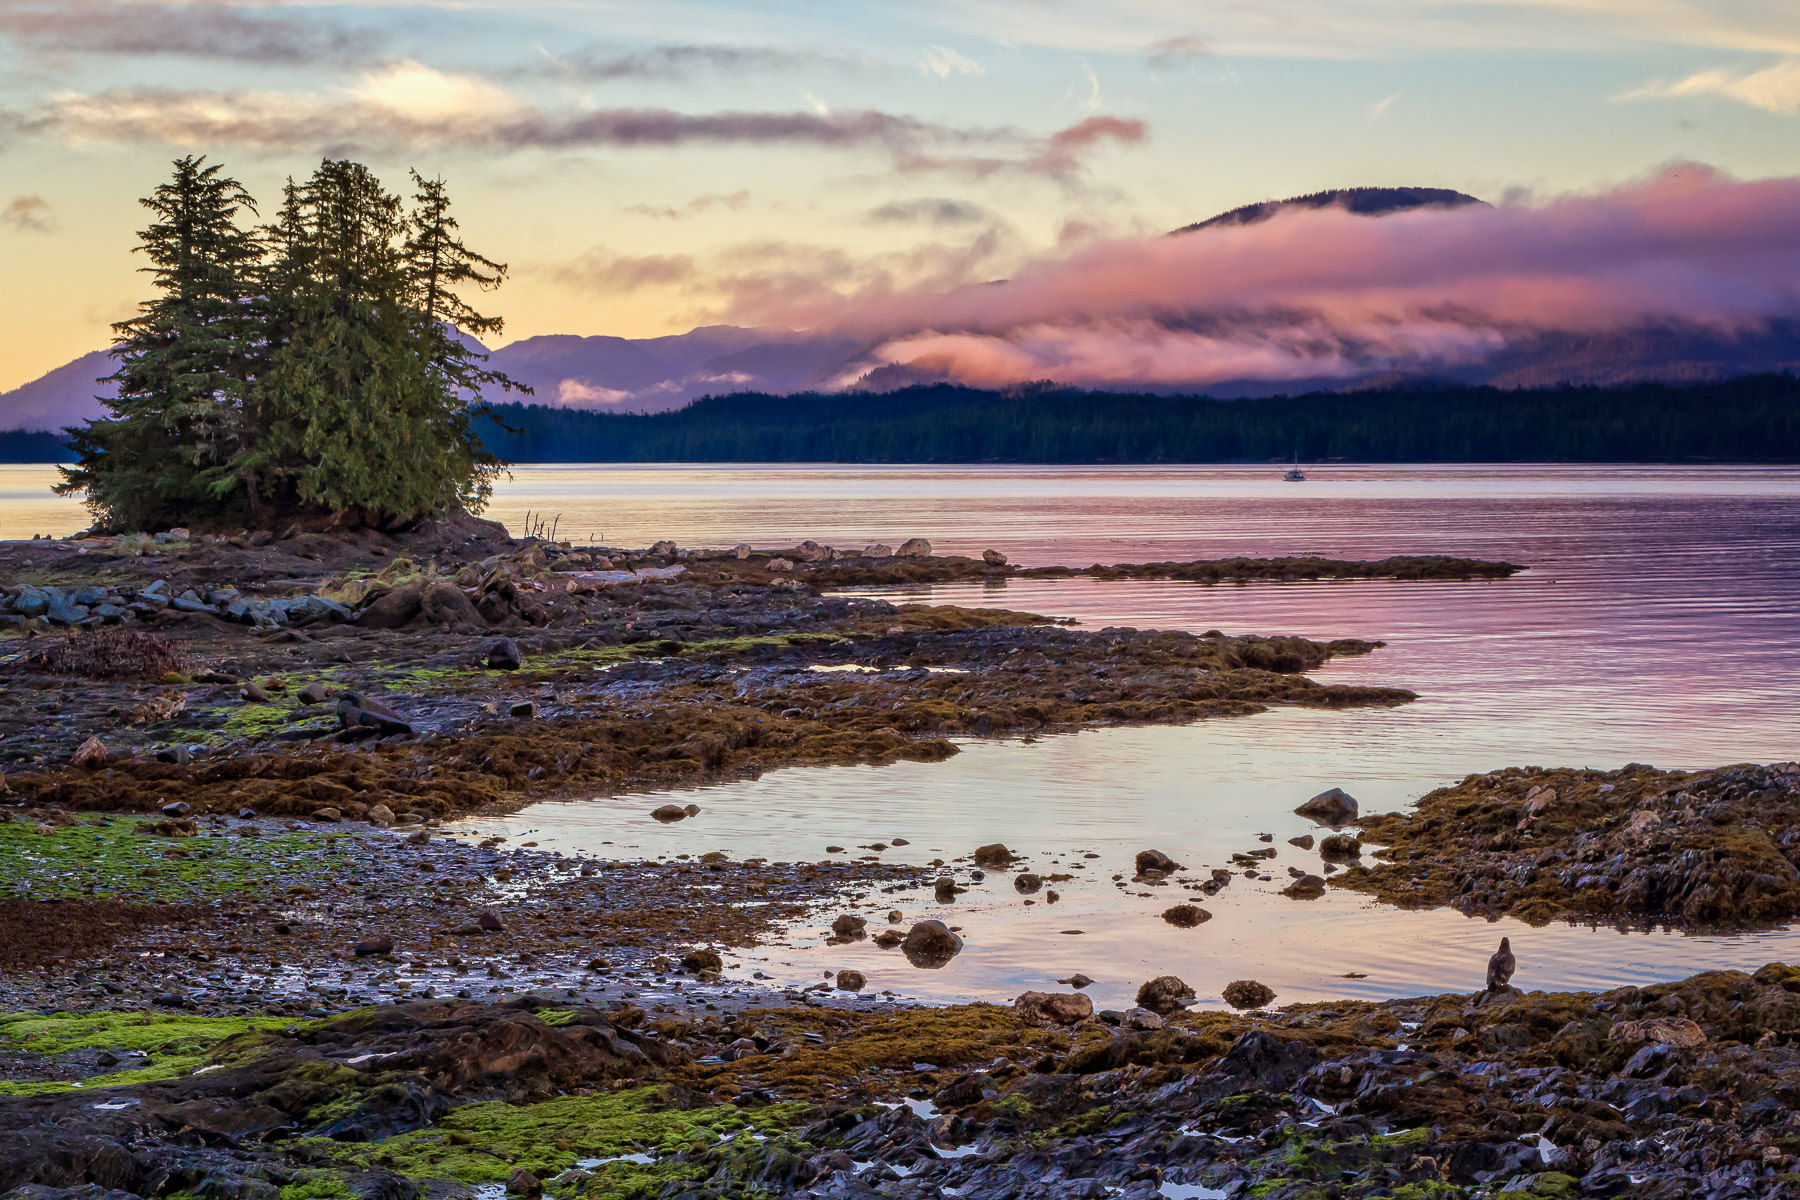 The first light of the sun illuminates the Tongass Narrows just north of Ketchikan, Alaska.